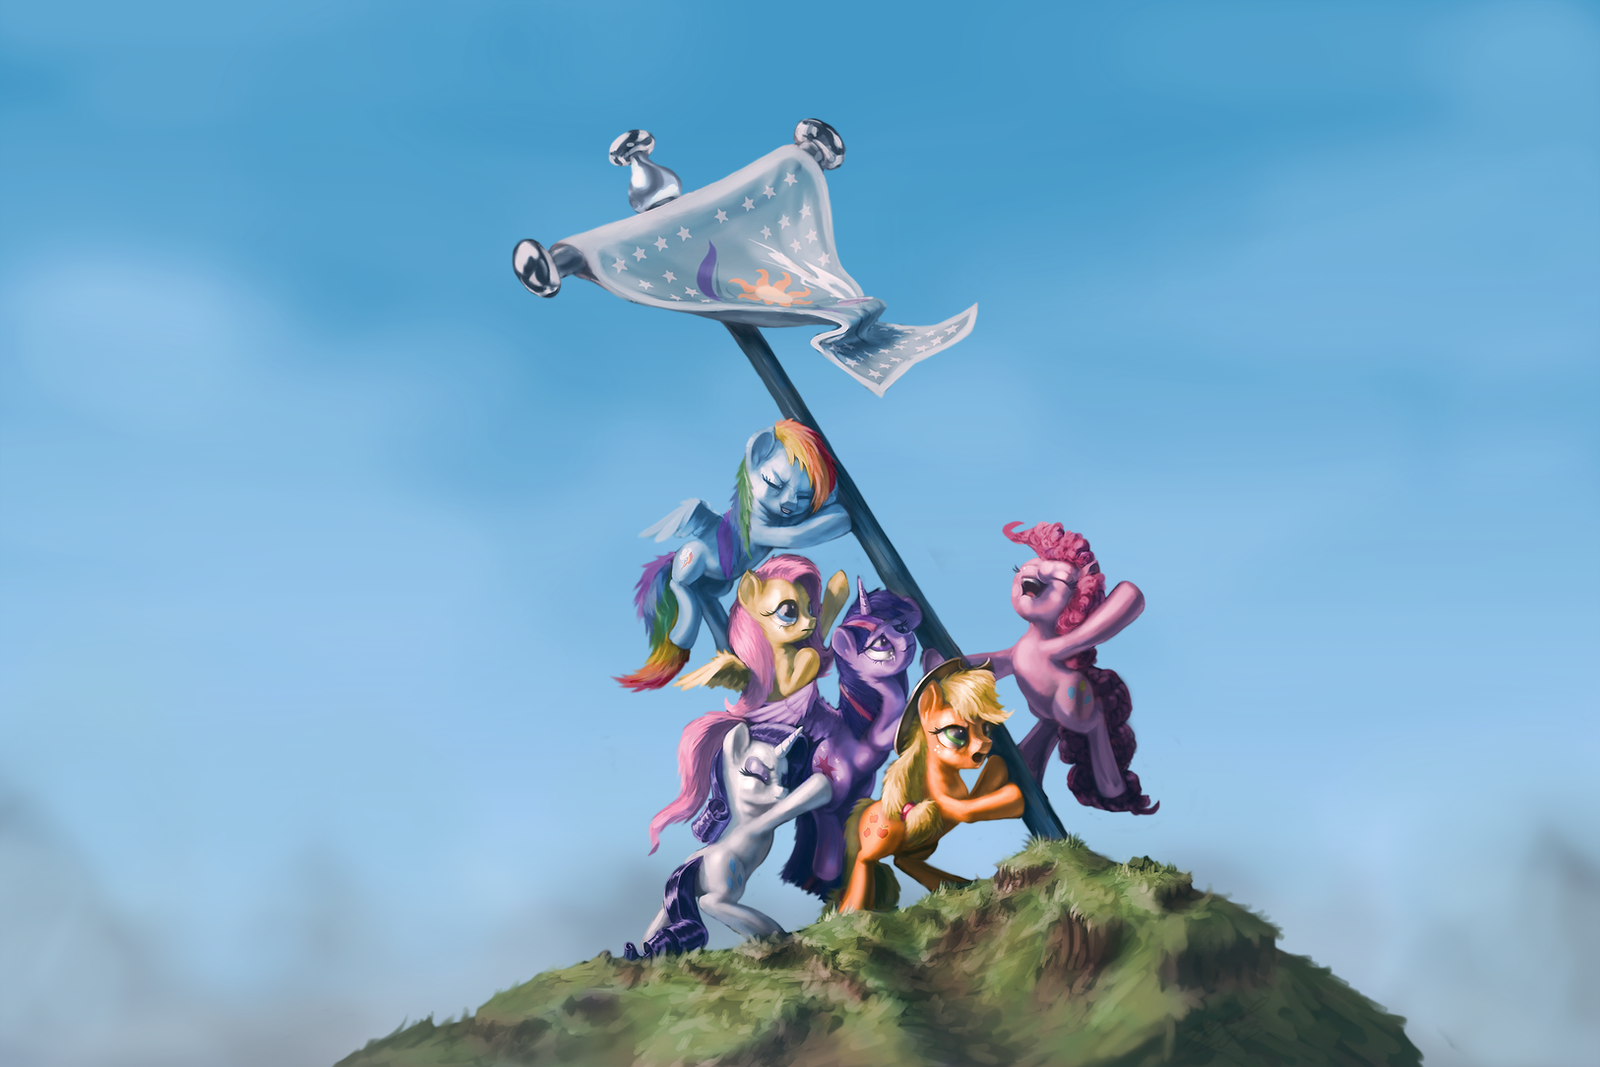 Raise by AssasinMonkey